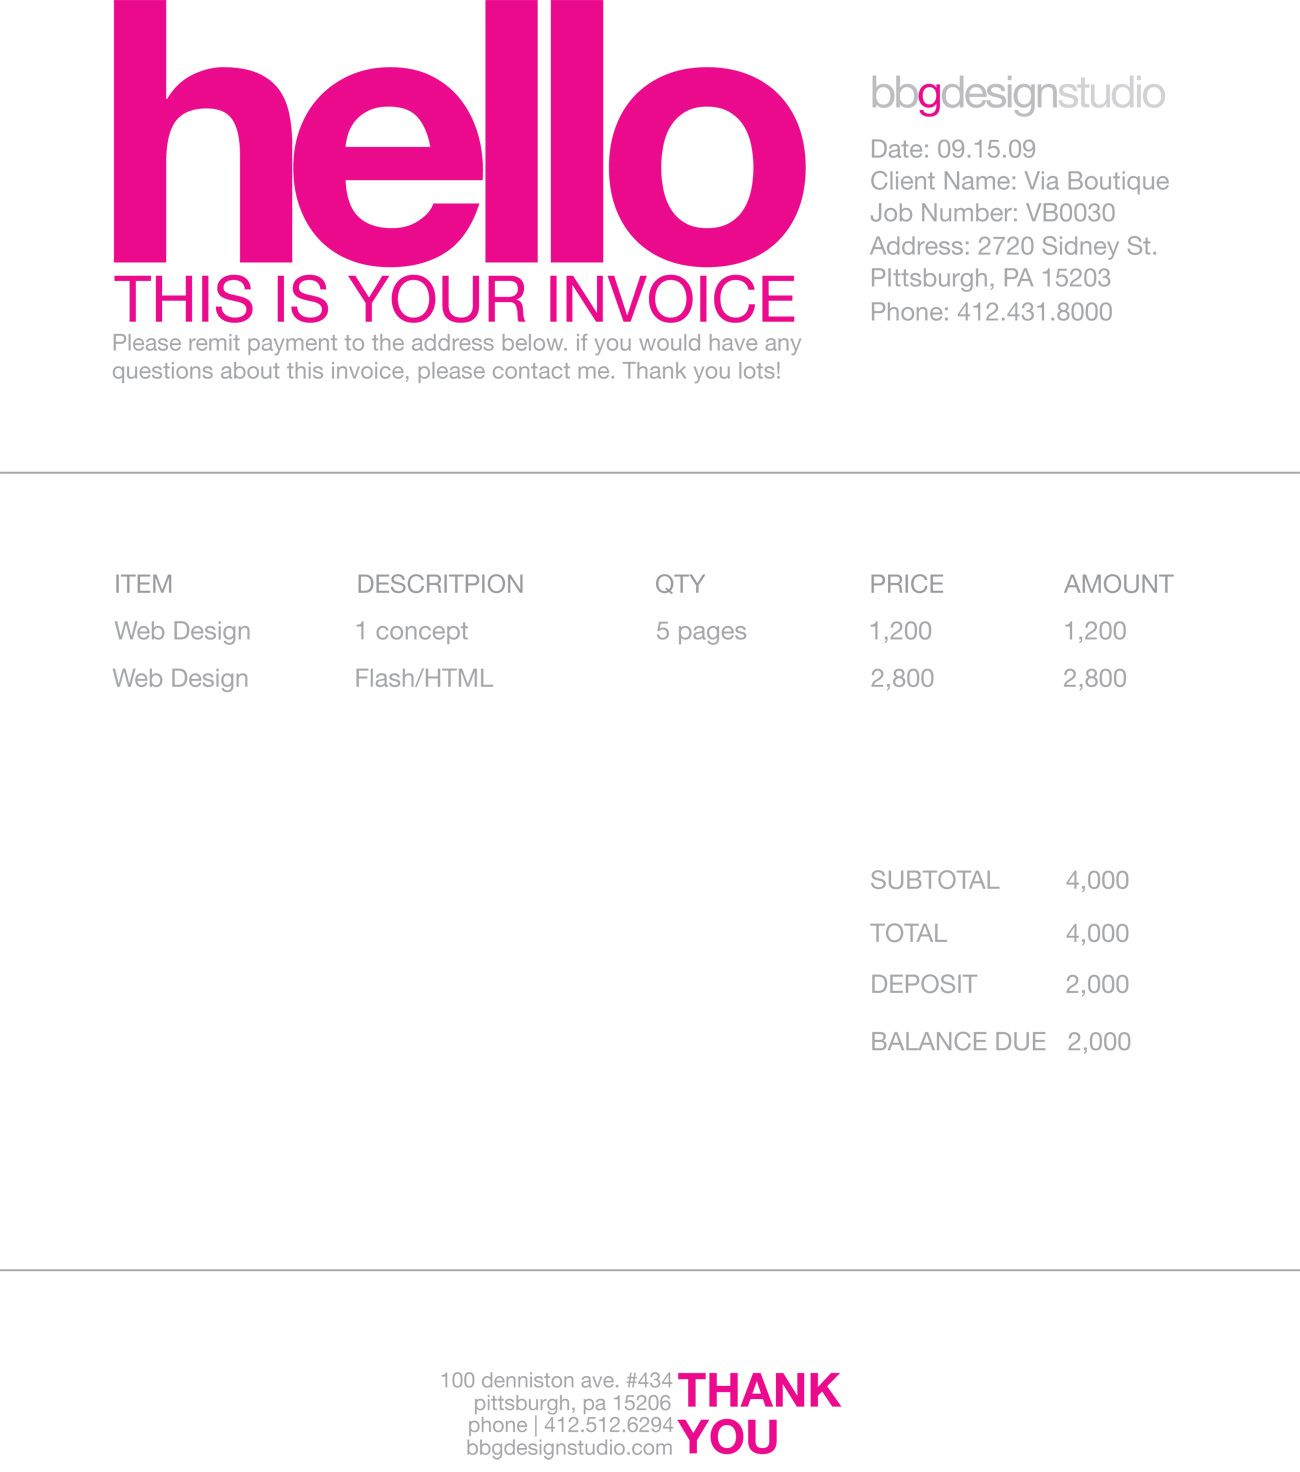 Imagerackus  Remarkable  Images About Invoice Design On Pinterest With Inspiring Written Receipt For Car Sale Besides Rent Receipt Format Download Furthermore Banana Bread Receipts With Archaic Format Of Receipt And Payment Account Also Rent Receipt Word Document In Addition Format For Receipt Of Payment And Free Printable Receipts For Payment As Well As Blank Receipt Form Free Additionally Passenger Receipt From Pinterestcom With Imagerackus  Inspiring  Images About Invoice Design On Pinterest With Archaic Written Receipt For Car Sale Besides Rent Receipt Format Download Furthermore Banana Bread Receipts And Remarkable Format Of Receipt And Payment Account Also Rent Receipt Word Document In Addition Format For Receipt Of Payment From Pinterestcom